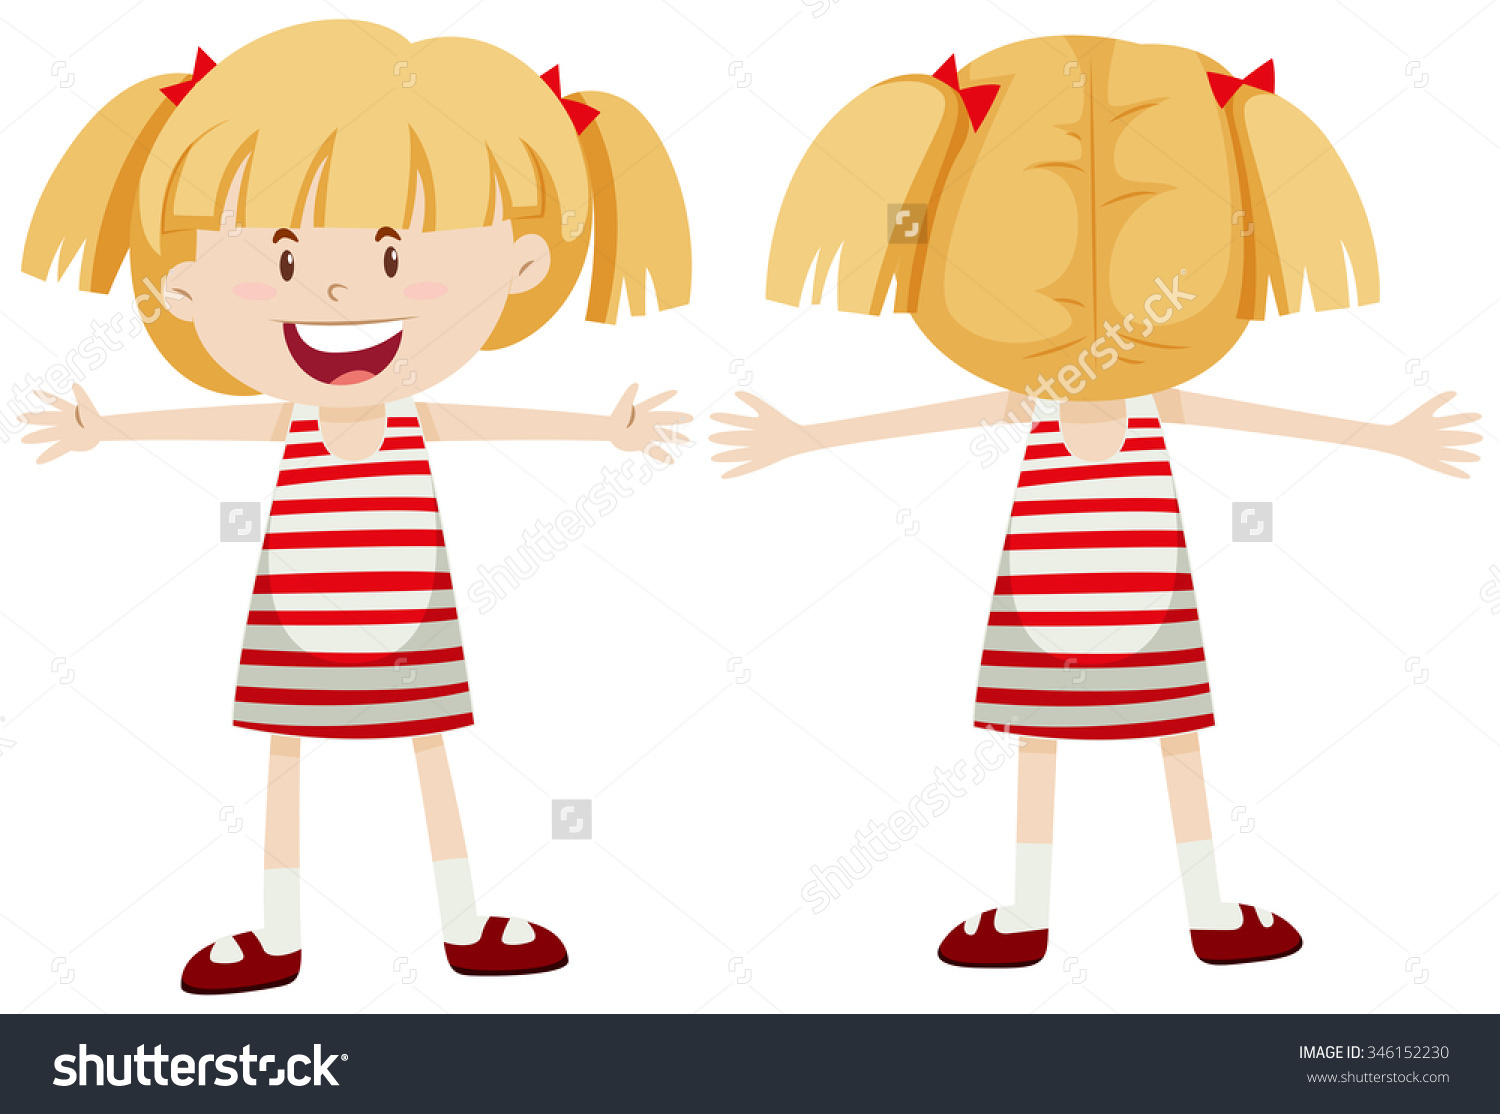 Little Girl Front Back View Illustration Stock Vector 346152230.